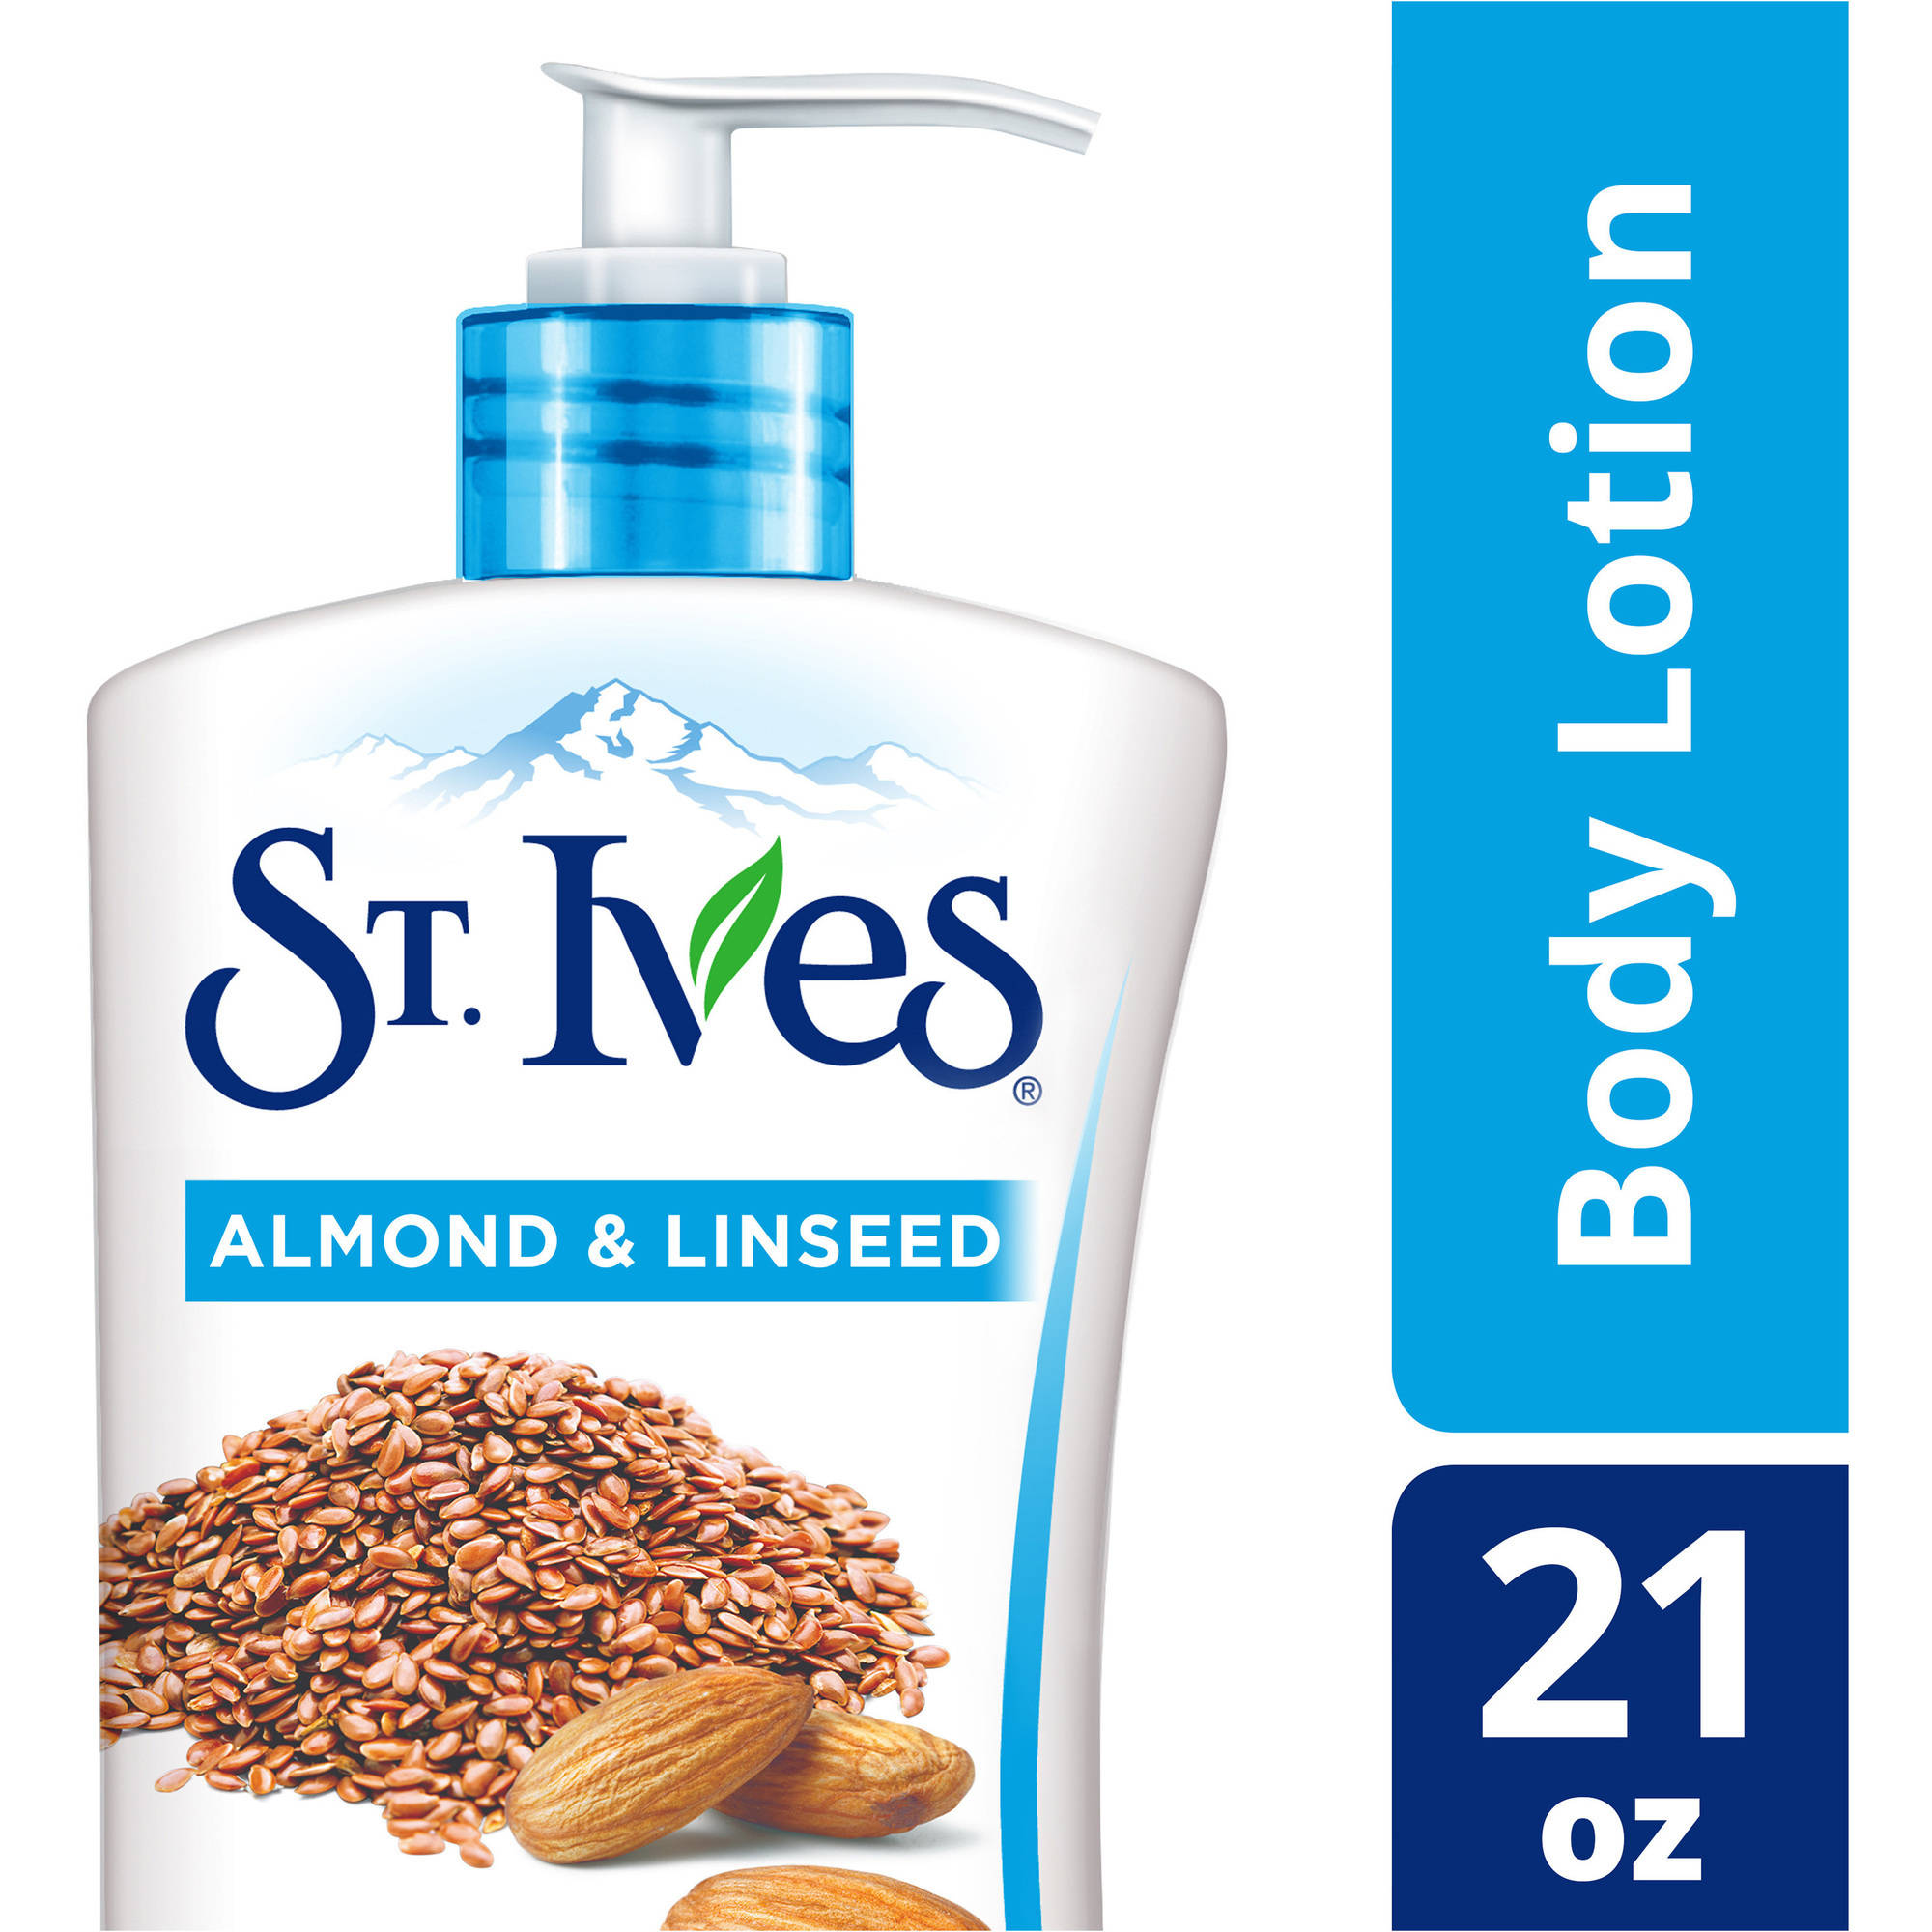 St. Ives 24 Hour Deep Restoring Almond and Linseed Body Lotion, 21 oz